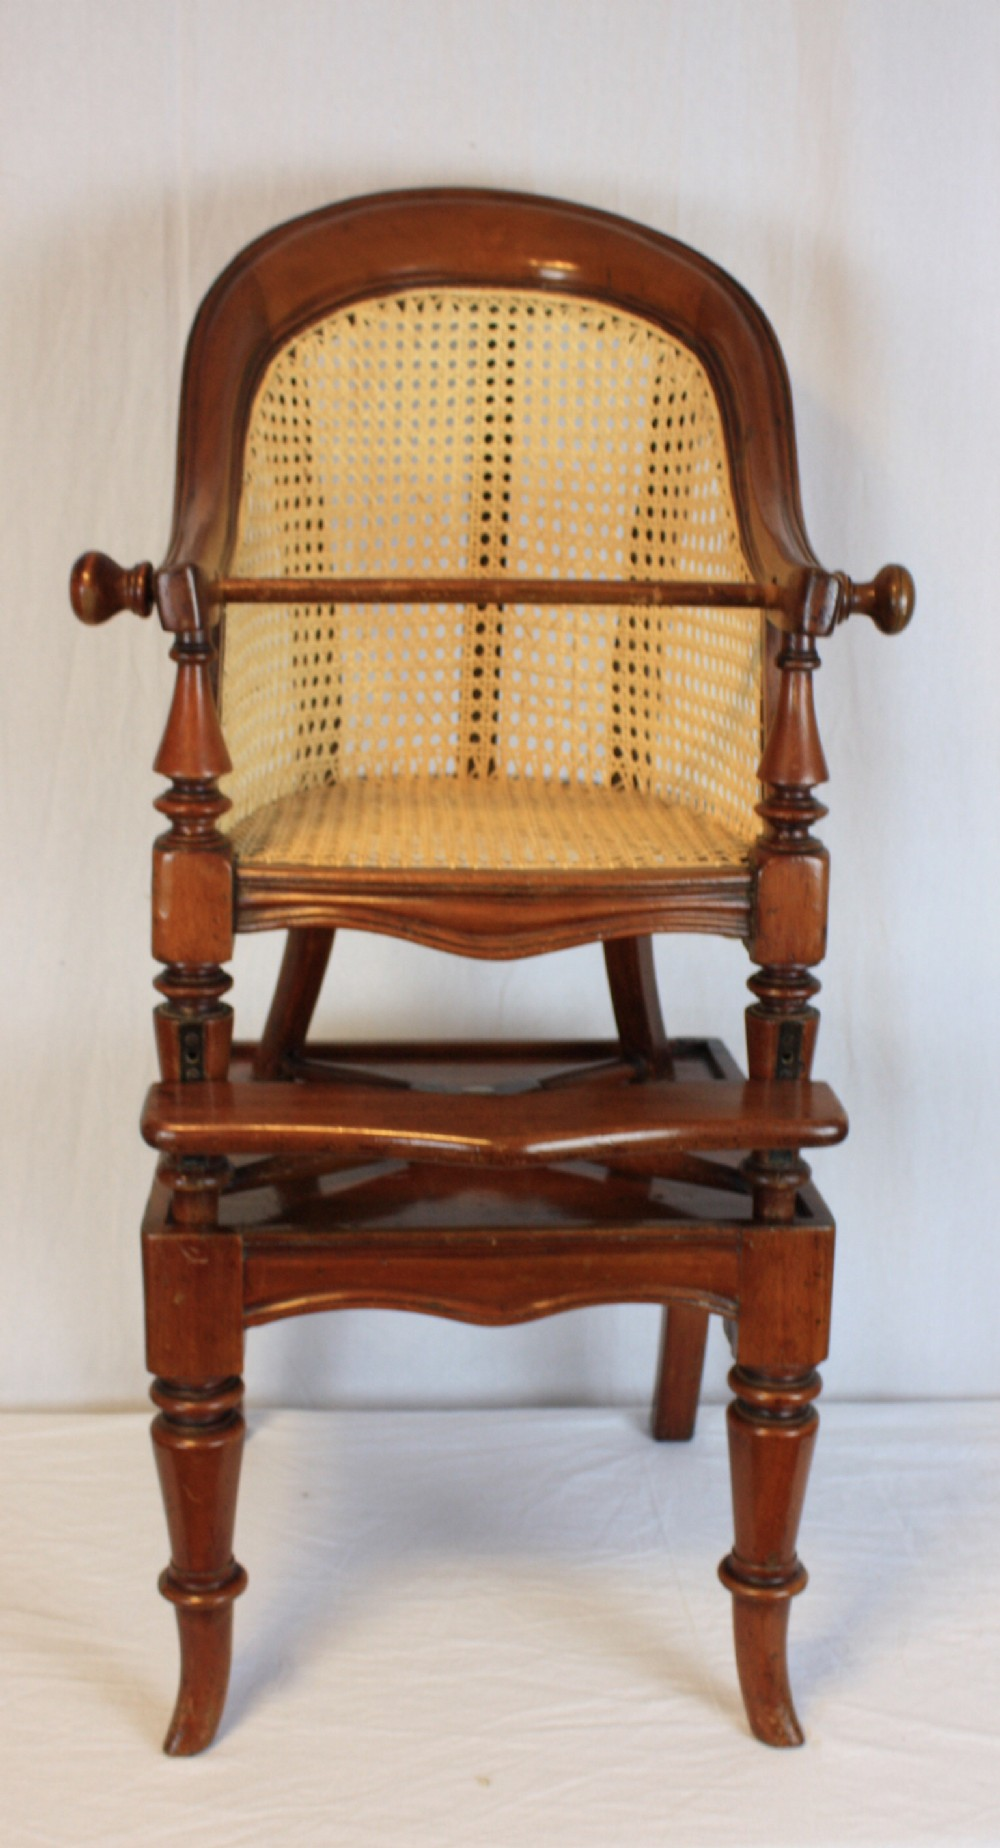 c19th child's high chair